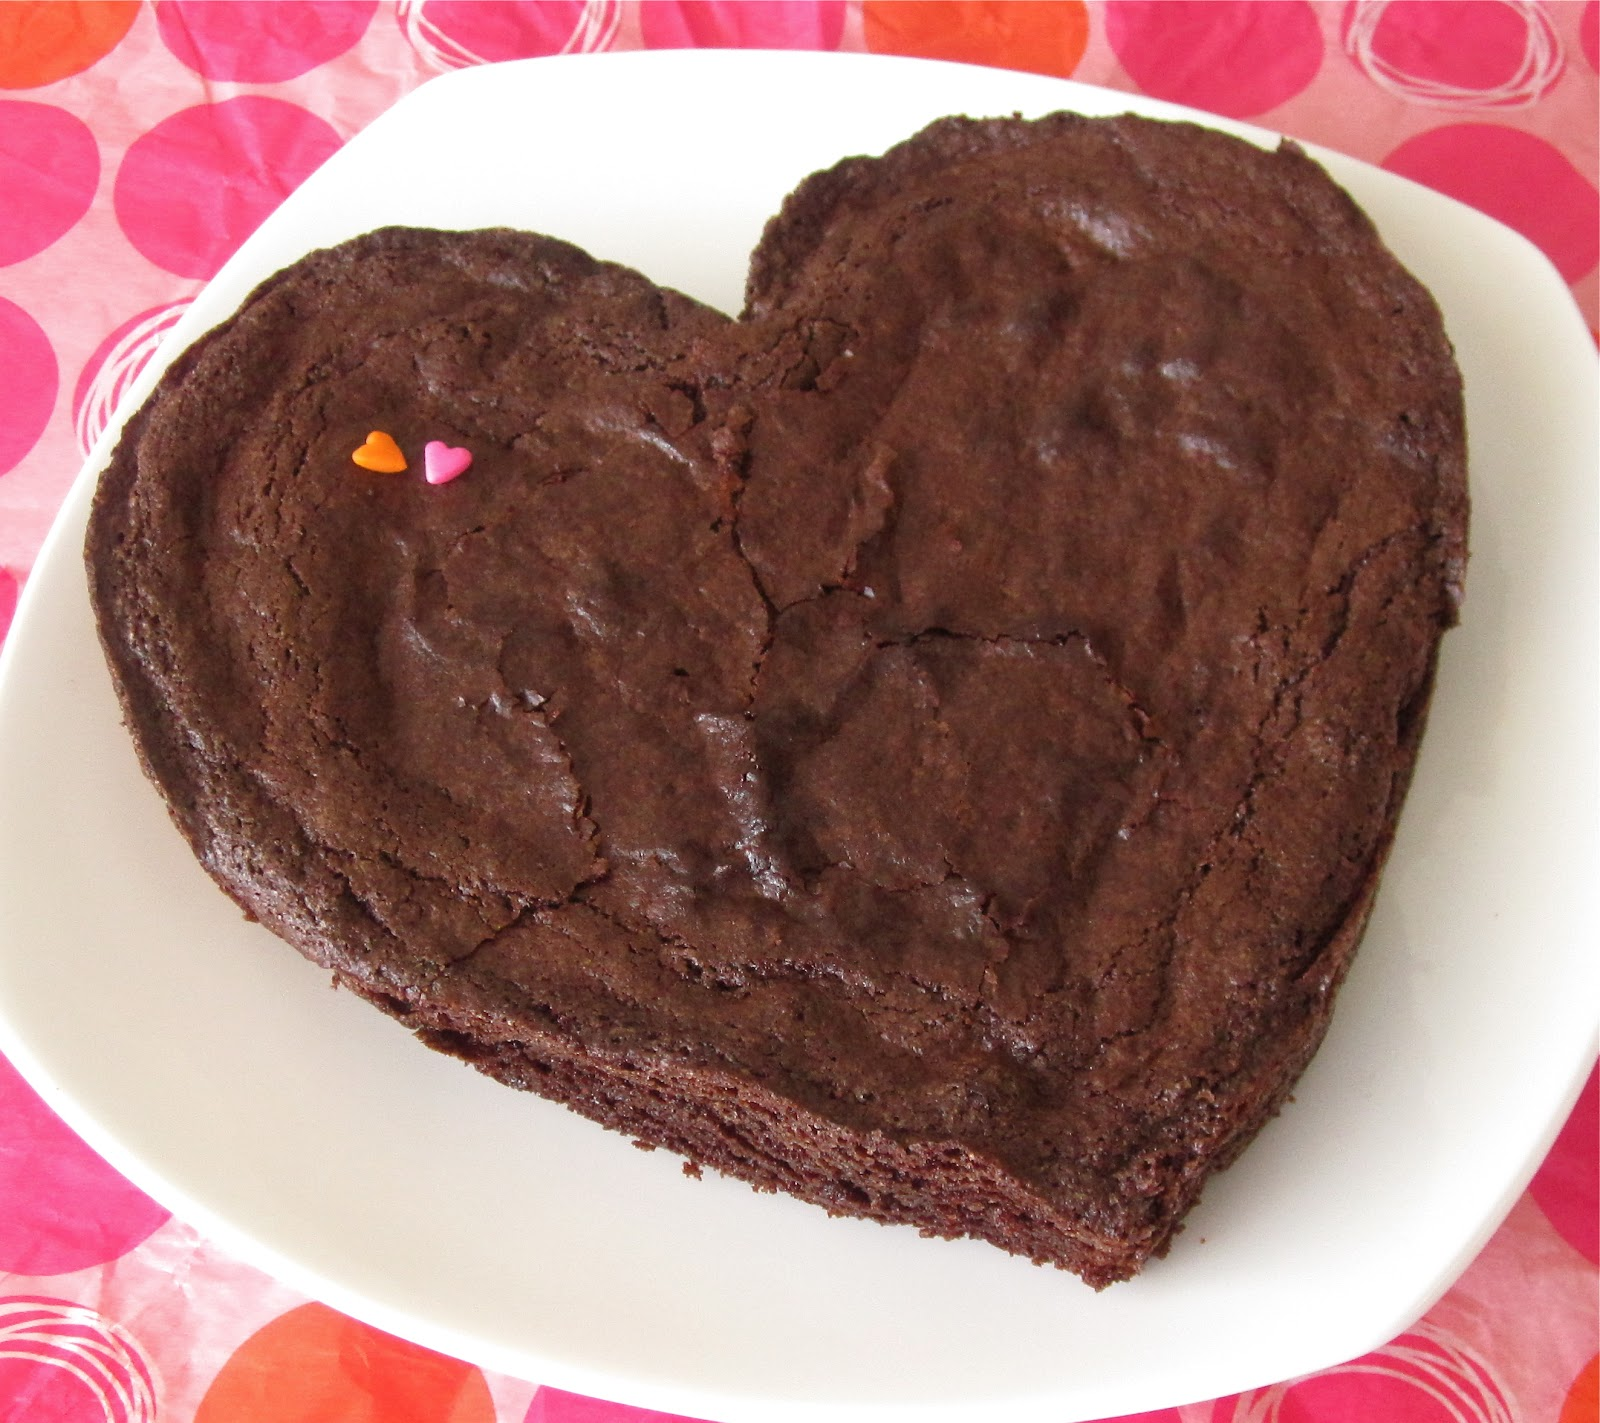 Fudgy Heart Shaped Brownie With A Diy Disposable Heart Div Div Class Fileinfo 1600 X 1423 Jpeg 330 Kb Div Div Div Div Class Item A Class Thumb Target Blank Href Https I Pinimg Com 736x 70 C7 6c 70c76c774b5128e5537e619c4d408a78 Jpg H Id Images 5113 1 Div Class Cico Style Width 230px Height 170px Img Height 170 Width 230 Src Http Tse1 Mm Bing Net Th Id Oip 3akpacoozdknt Vepb6wxghagt W 230 Amp H 170 Amp Rs 1 Amp Pcl Dddddd Amp O 5 Amp Pid 1 1 Alt Div A Div Class Meta A Class Tit Target Blank Href Https Www Pinterest Com Pin 356699232984838066 H Id Images 5111 1 Www Pinterest Com A Div Class Des Fudgy Heart Shaped Brownie With A Diy Disposable Heart Div Div Class Fileinfo 640 X 580 Jpeg 54 Kb Div Div Div Div Class Item A Class Thumb Target Blank Href Http 1 Bp Blogspot Com Jf1w9z2cb5o Vbeamu3ur4i Aaaaaaaaiqw O5tmtn Tcuk S1600 Img 9001 Jpg H Id Images 5119 1 Div Class Cico Style Width 230px Height 170px Img Height 170 Width 230 Src Http Tse1 Mm Bing Net Th Id Oip K89rwc Qkhnpe0e365iepqhaha W 230 Amp H 170 Amp Rs 1 Amp Pcl Dddddd Amp O 5 Amp Pid 1 1 Alt Div A Div Class Meta A Class Tit Target Blank Href Http Www Lindsayannbakes Com 2014 09 Video Diy Disposable Baking Pans Heart Html H Id Images 5117 1 Www Lindsayannbakes Com A Div Class Des Video Diy Disposable Baking Pans Heart Shaped Foil Pans